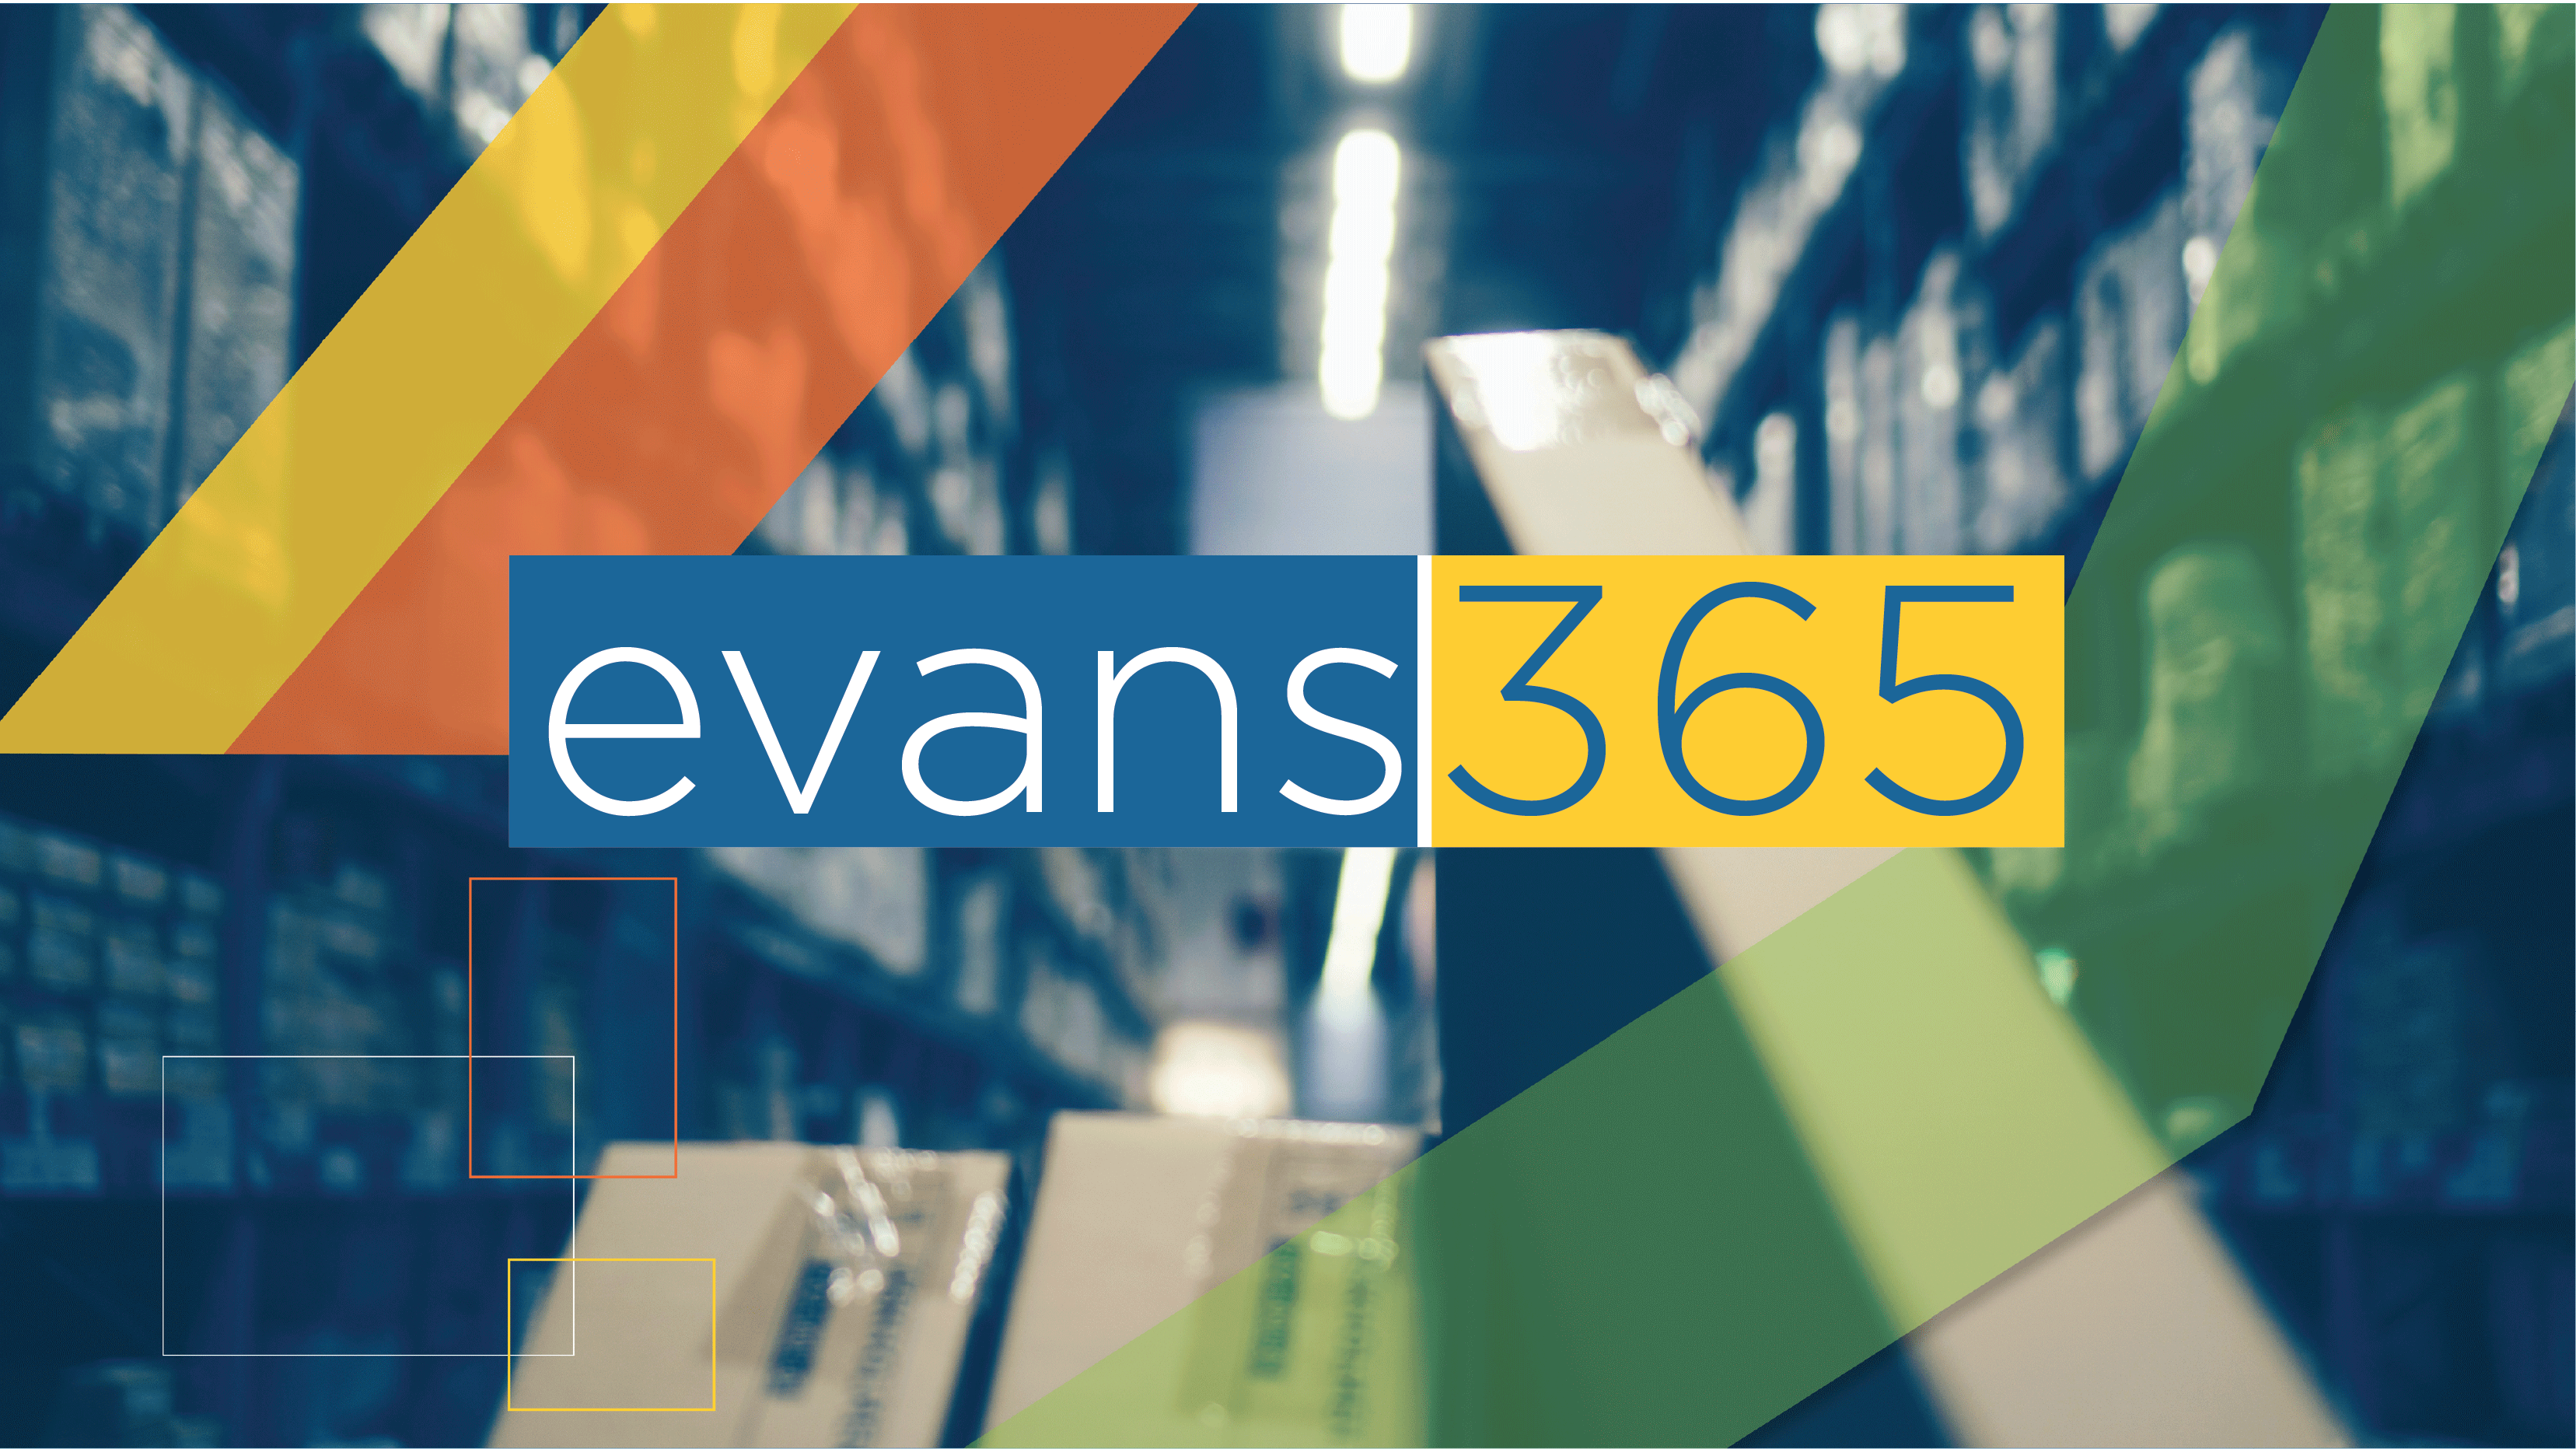 The evans365 Data Portal Provides Customers with Business Intelligence